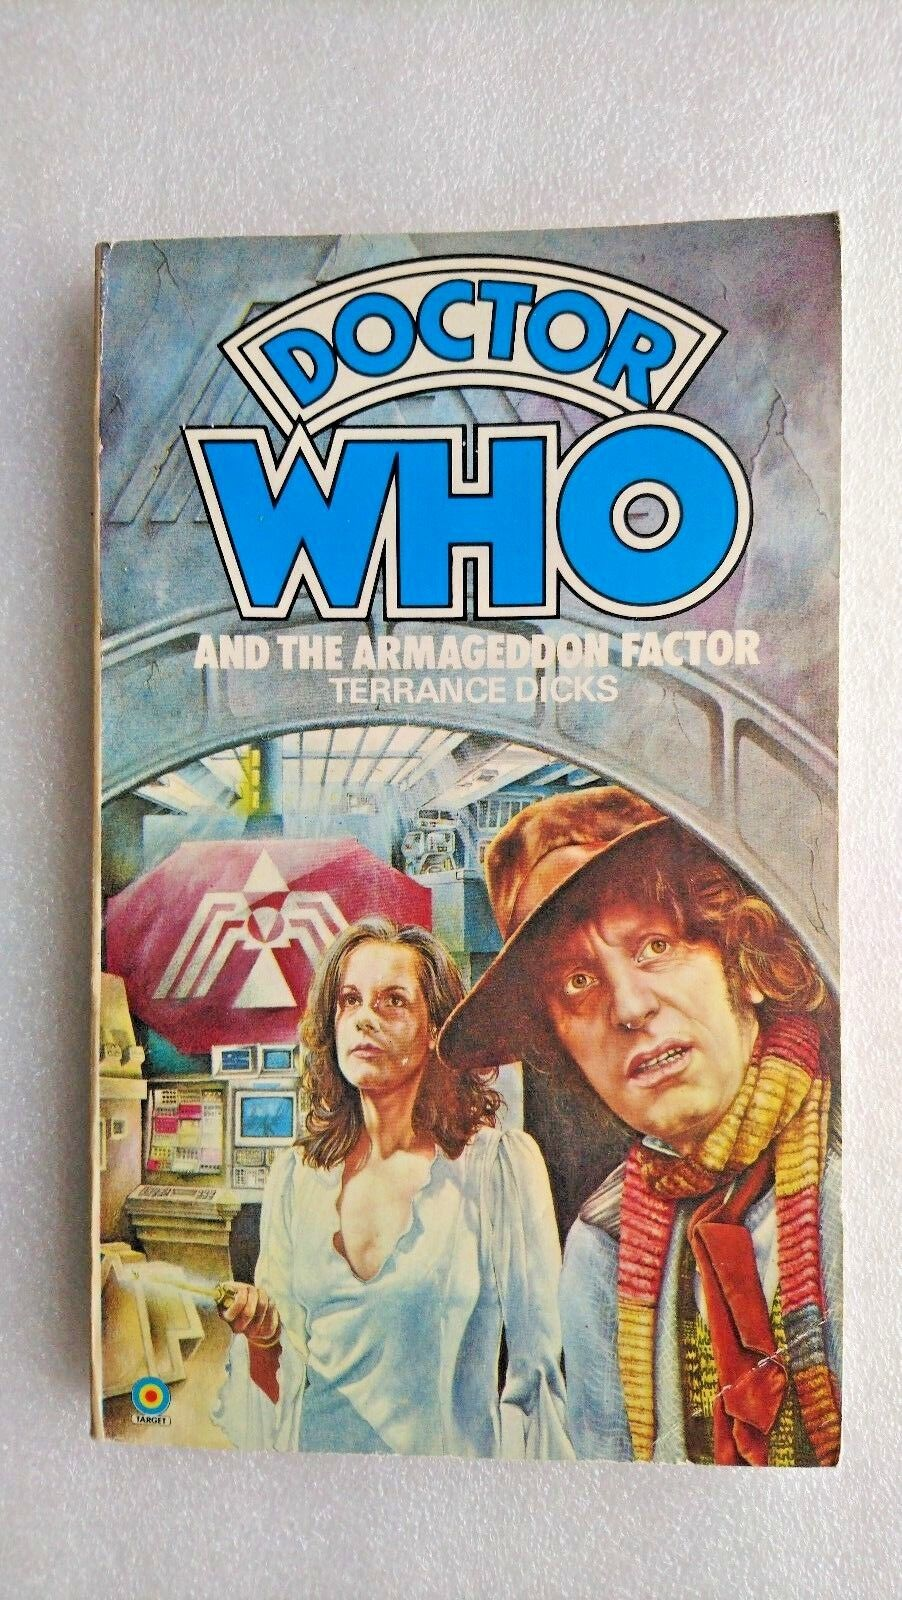 Doctor Who and the Armageddon Factor by Terrance Dicks (Paperback, 1980)